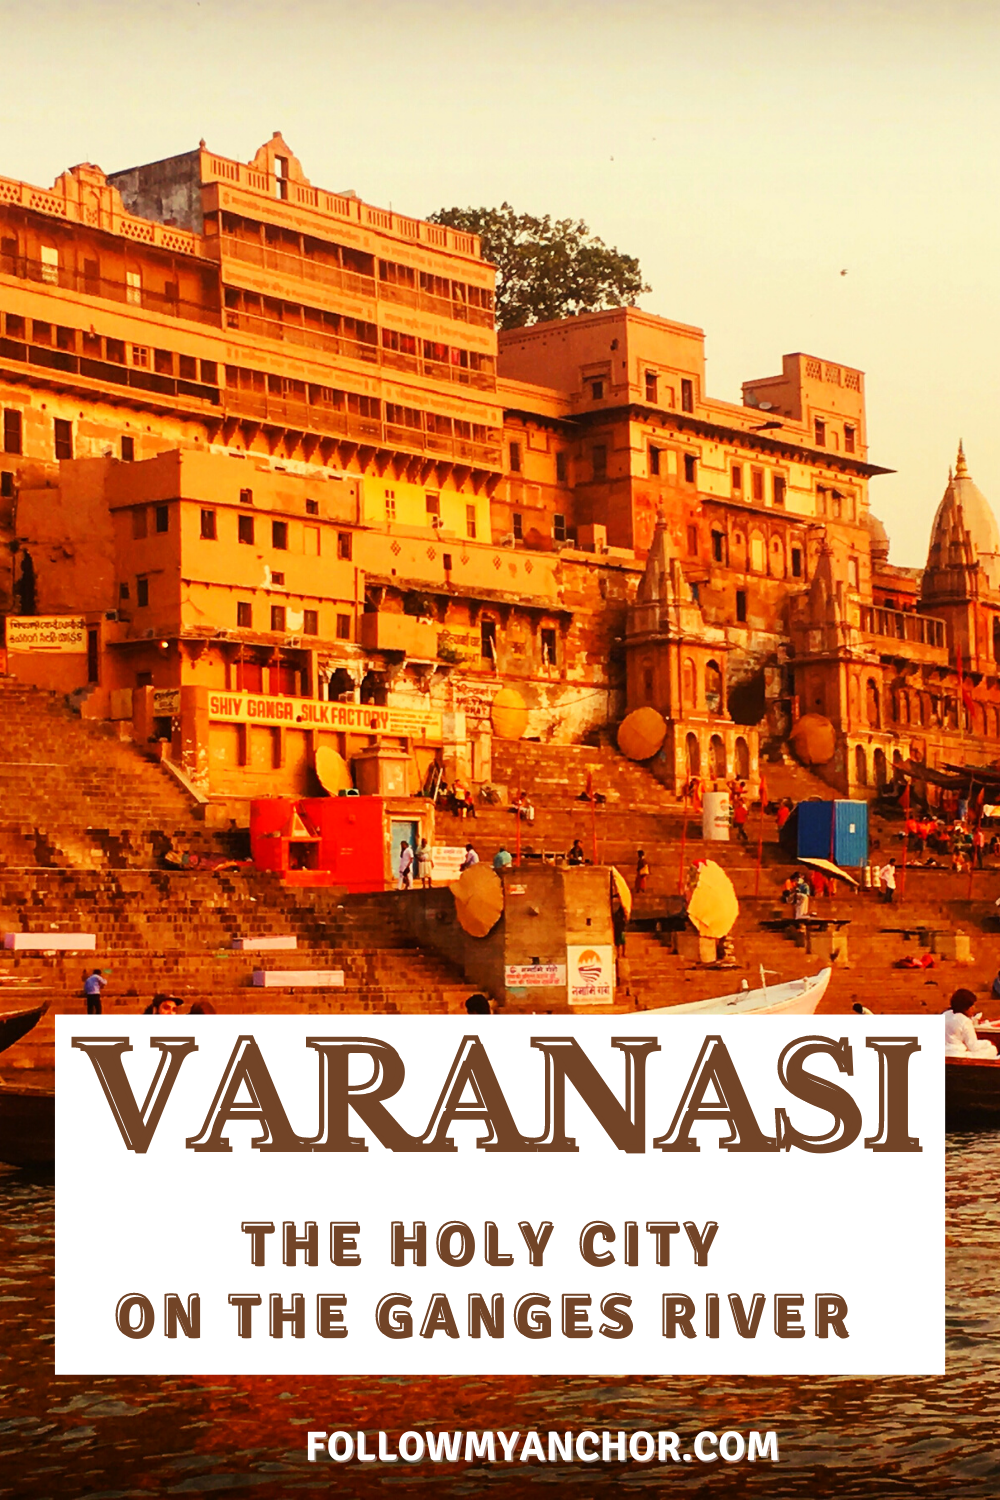 VARANASI: THINGS TO DO IN THE HOLY CITY ON THE GANGES RIVER.